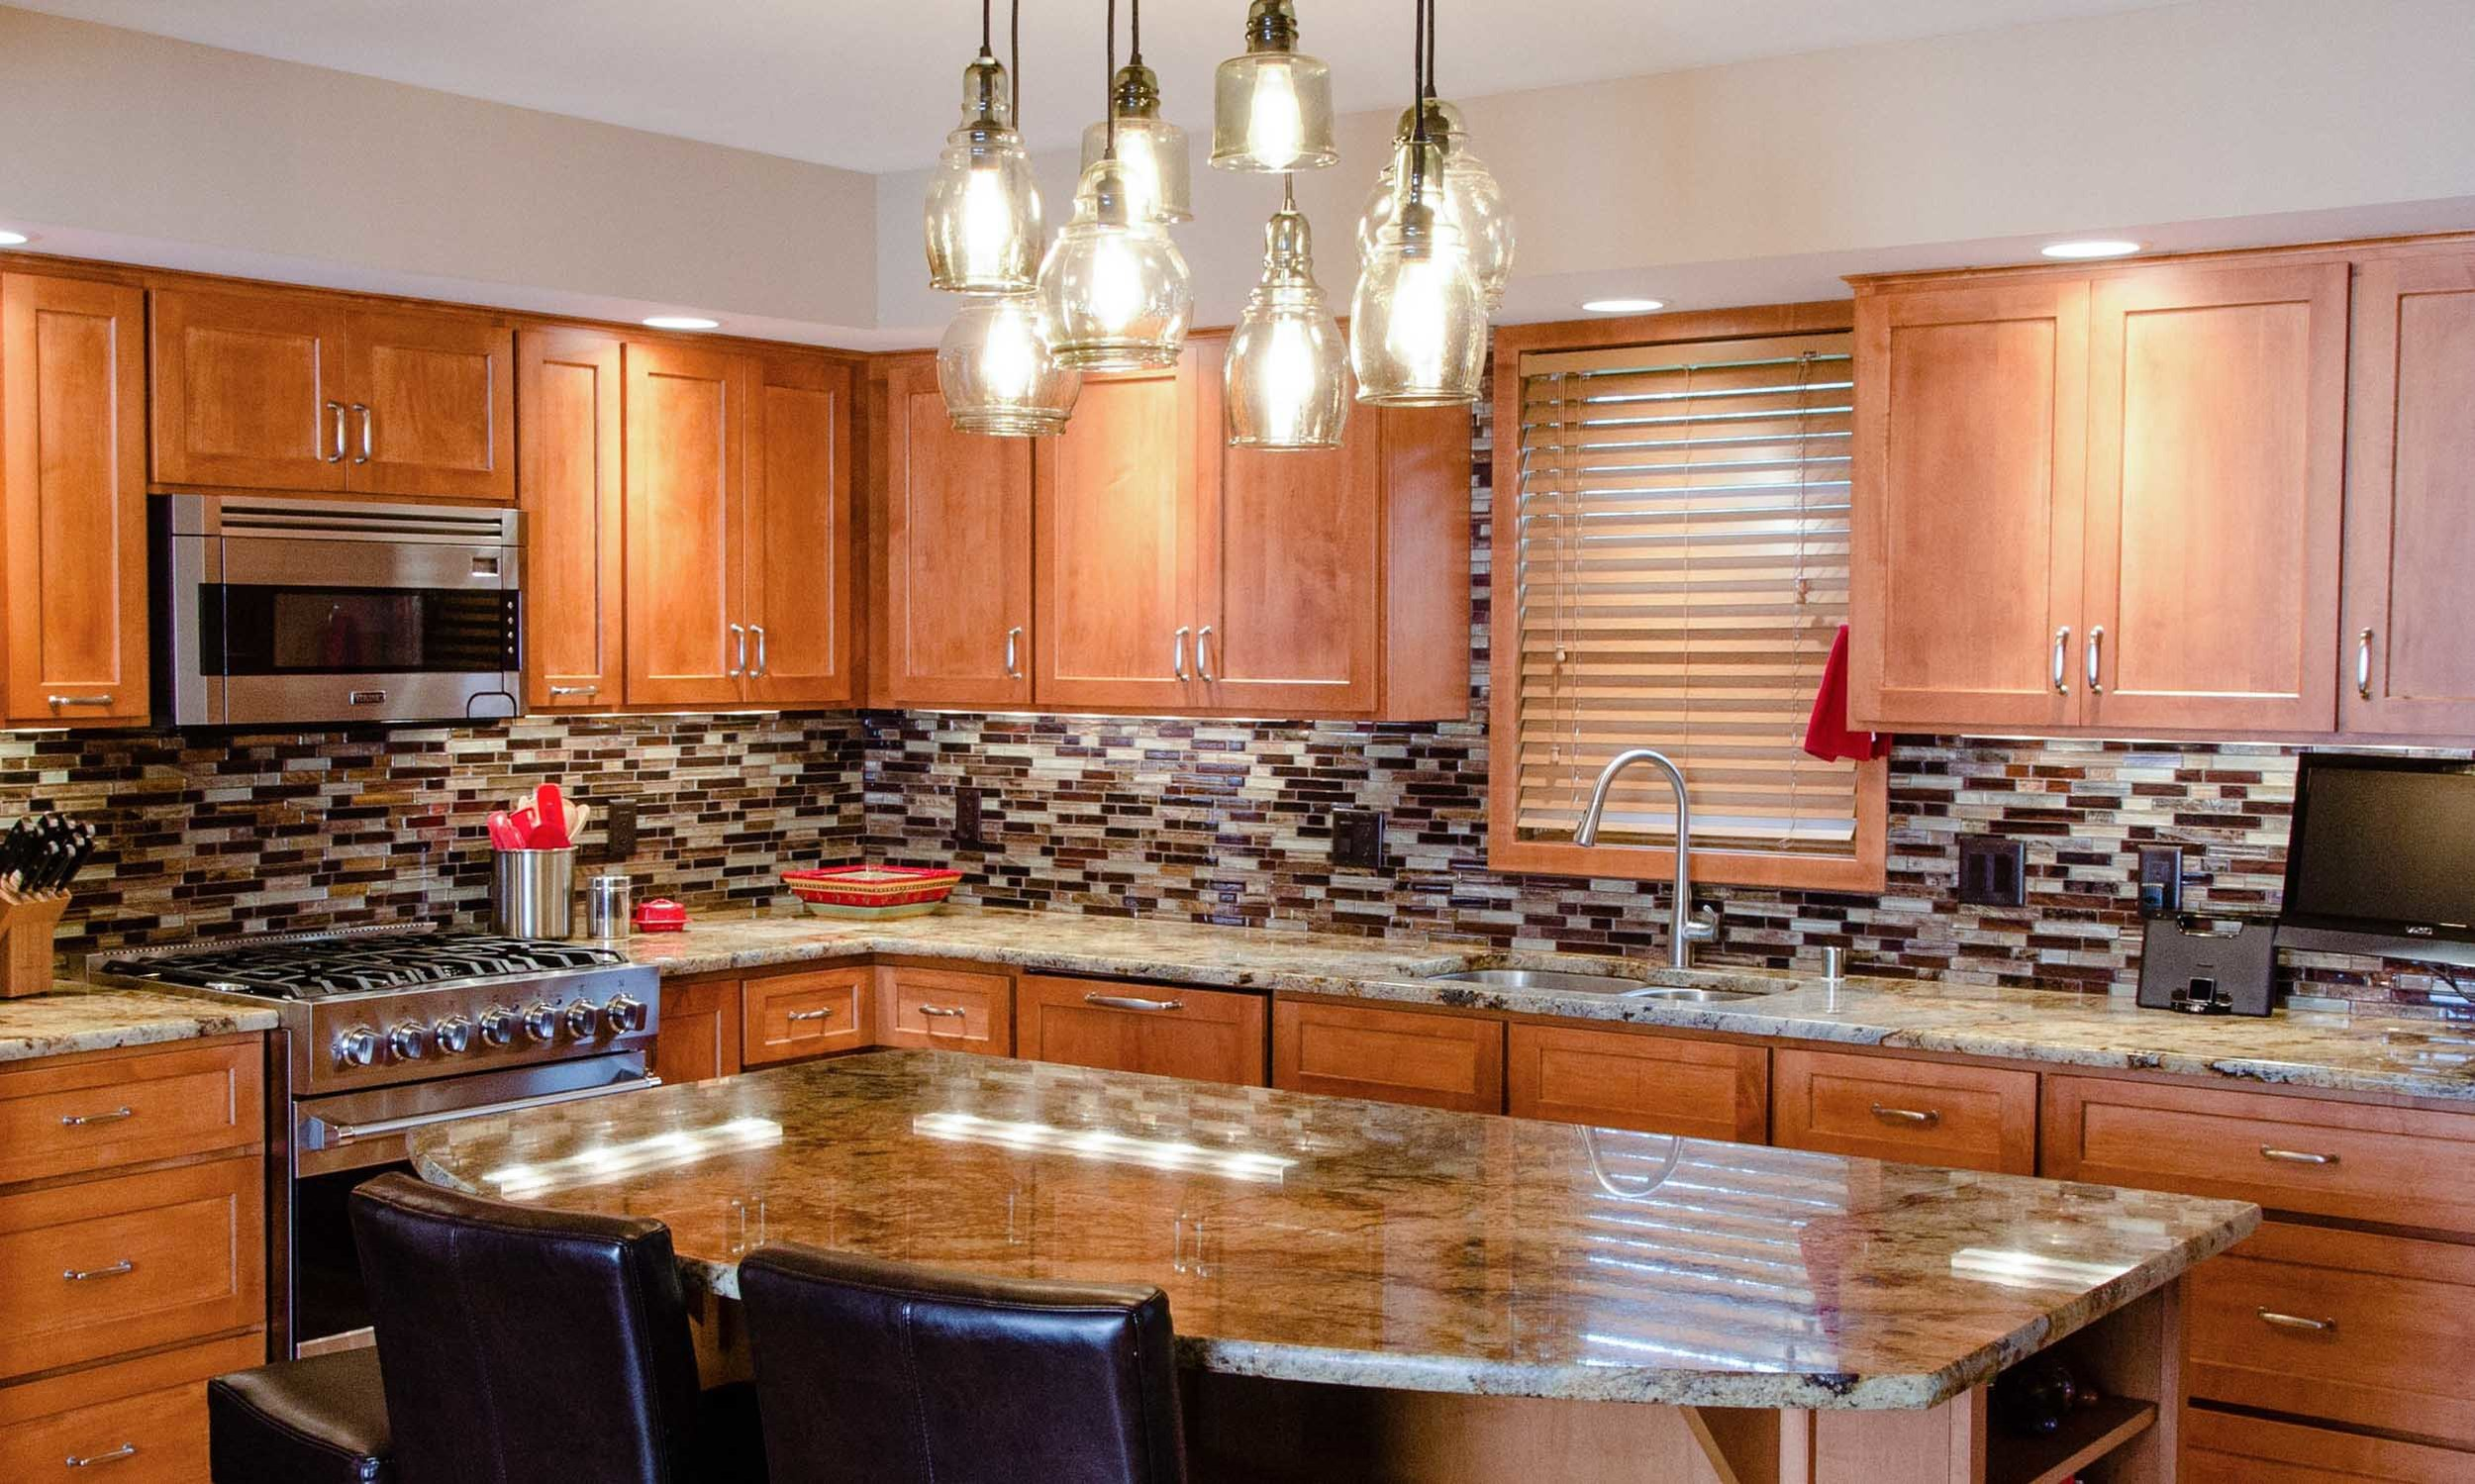 Kitchen Layouts Avoiding Floor Plan Mistakes When Remodeling Degnan Design Build Remodel